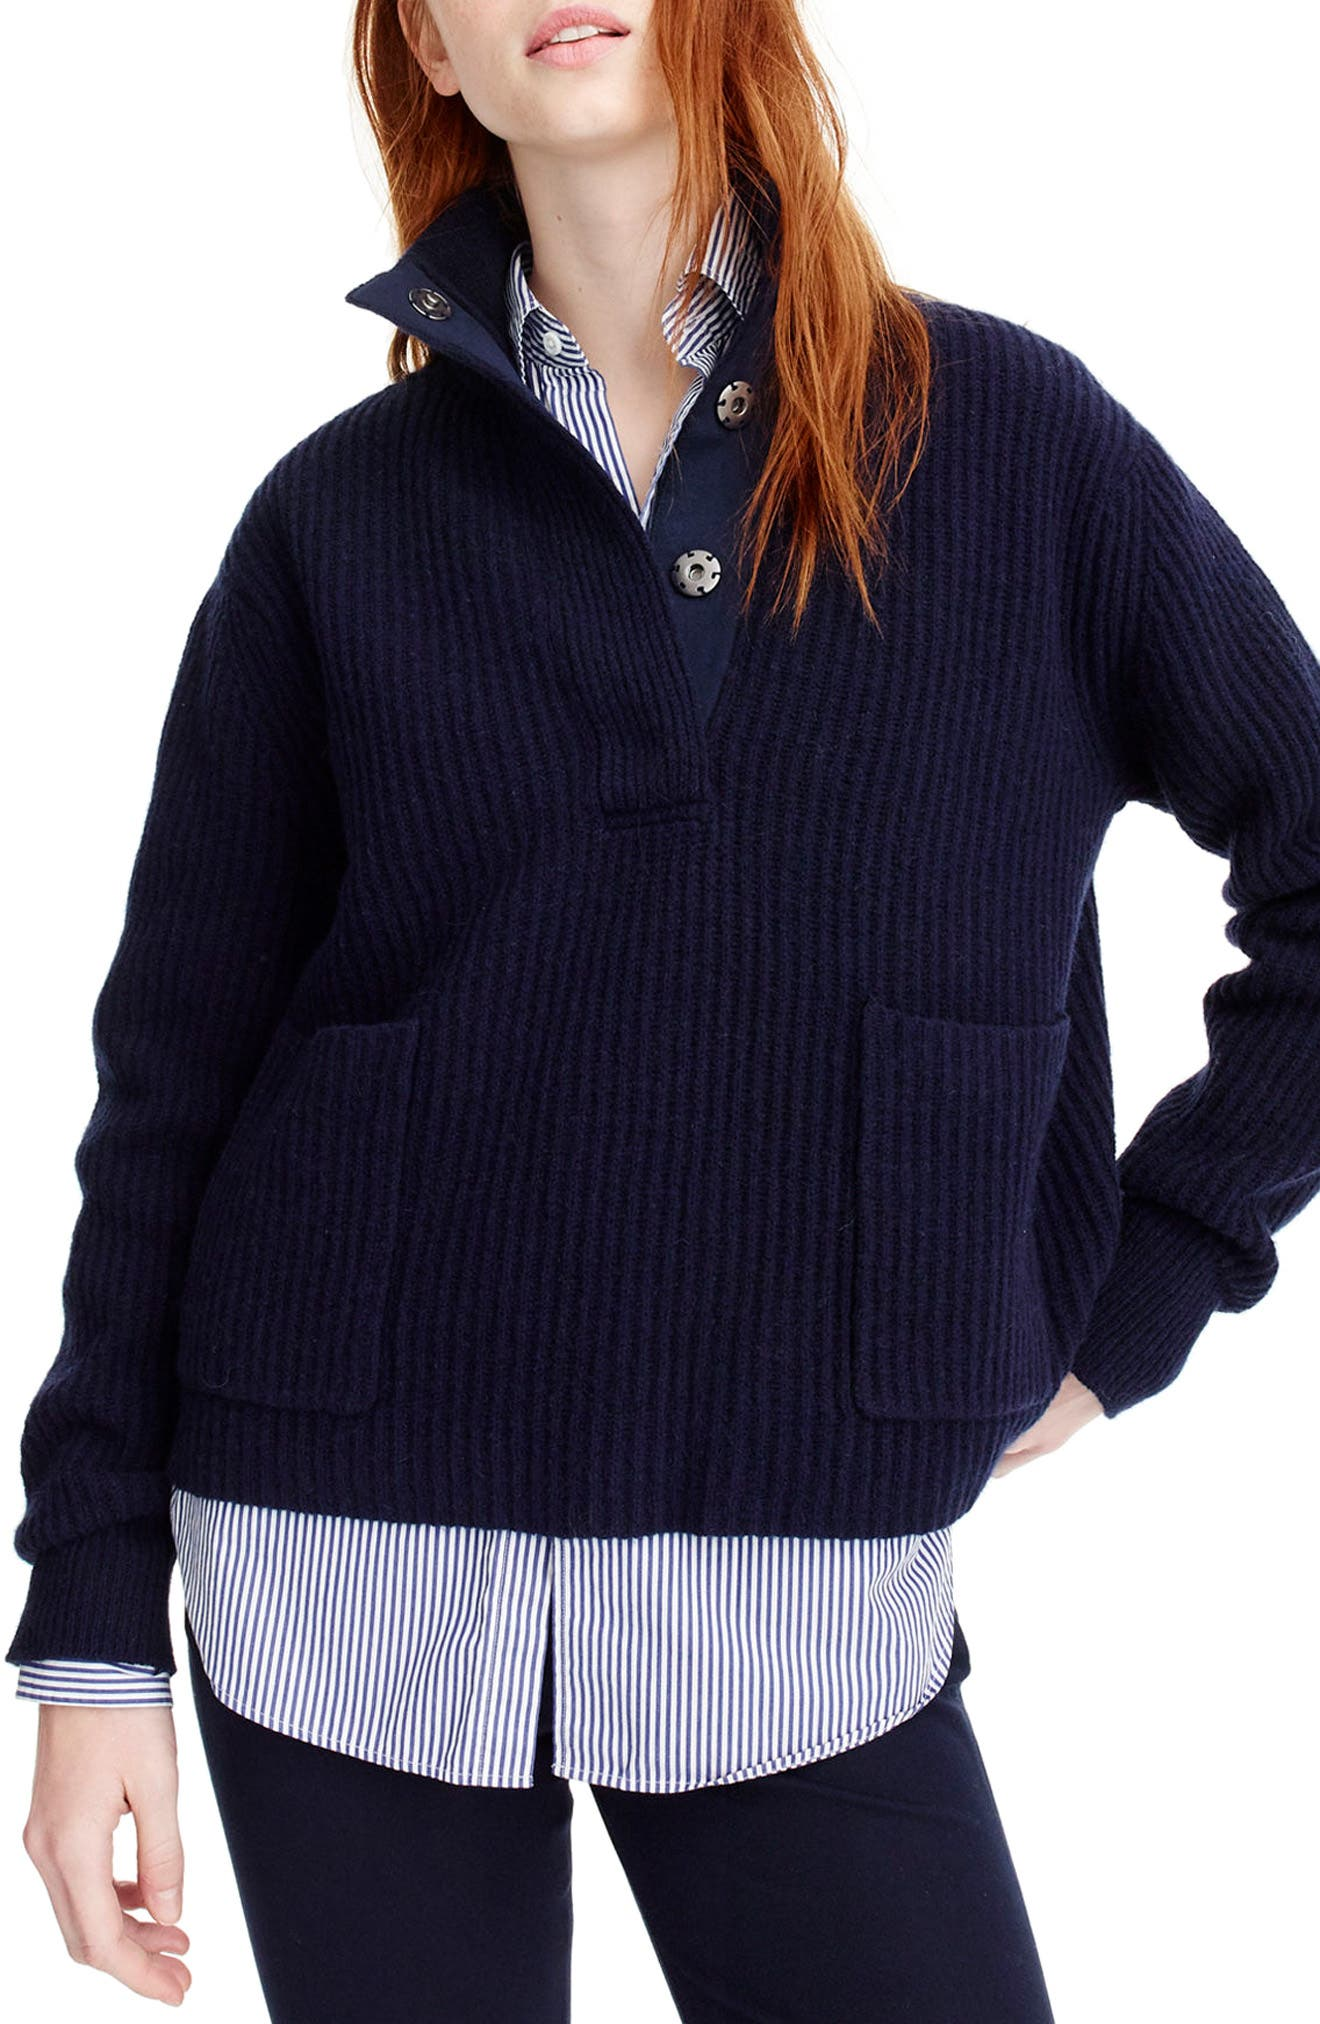 J.Crew Kay Lambswool Pullover Sweater,                         Main,                         color, Navy